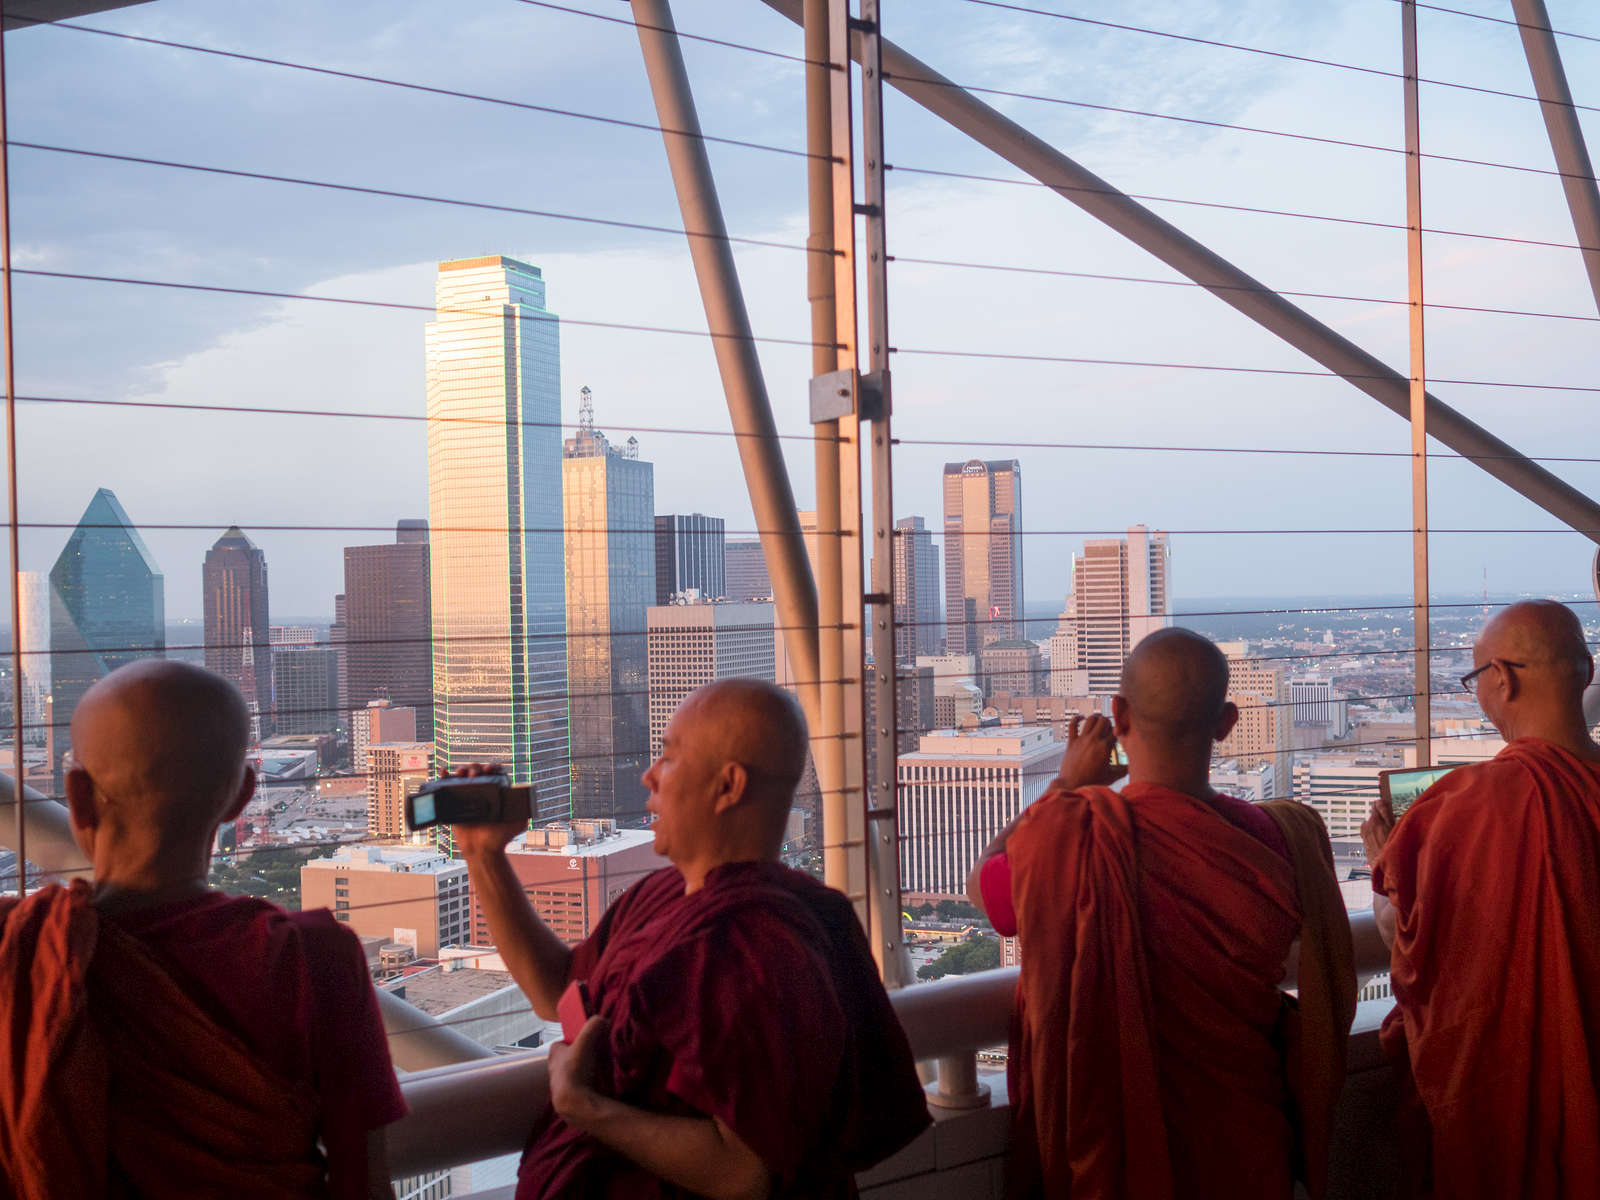 Buddhist Monks take in the view from the top of the Reunion Tower across the Dallas skyline dominated by the bulding of Bank of America.Dallas is a major city in Texas and is the largest urban center of the fourth most populous metropolitan area in the United States. The city ranks ninth in the U.S. and third in Texas after Houston and San Antonio. The city's prominence arose from its historical importance as a center for the oil and cotton industries, and its position along numerous railroad lines.For two weeks in the summer of 2015, photographer Peter Dench visited Dallas to document the metroplex in his epic reportage, DENCH DOES DALLAS.Photographed using an Olympus E-M5 Mark II©Peter Dench/Getty Images Reportage